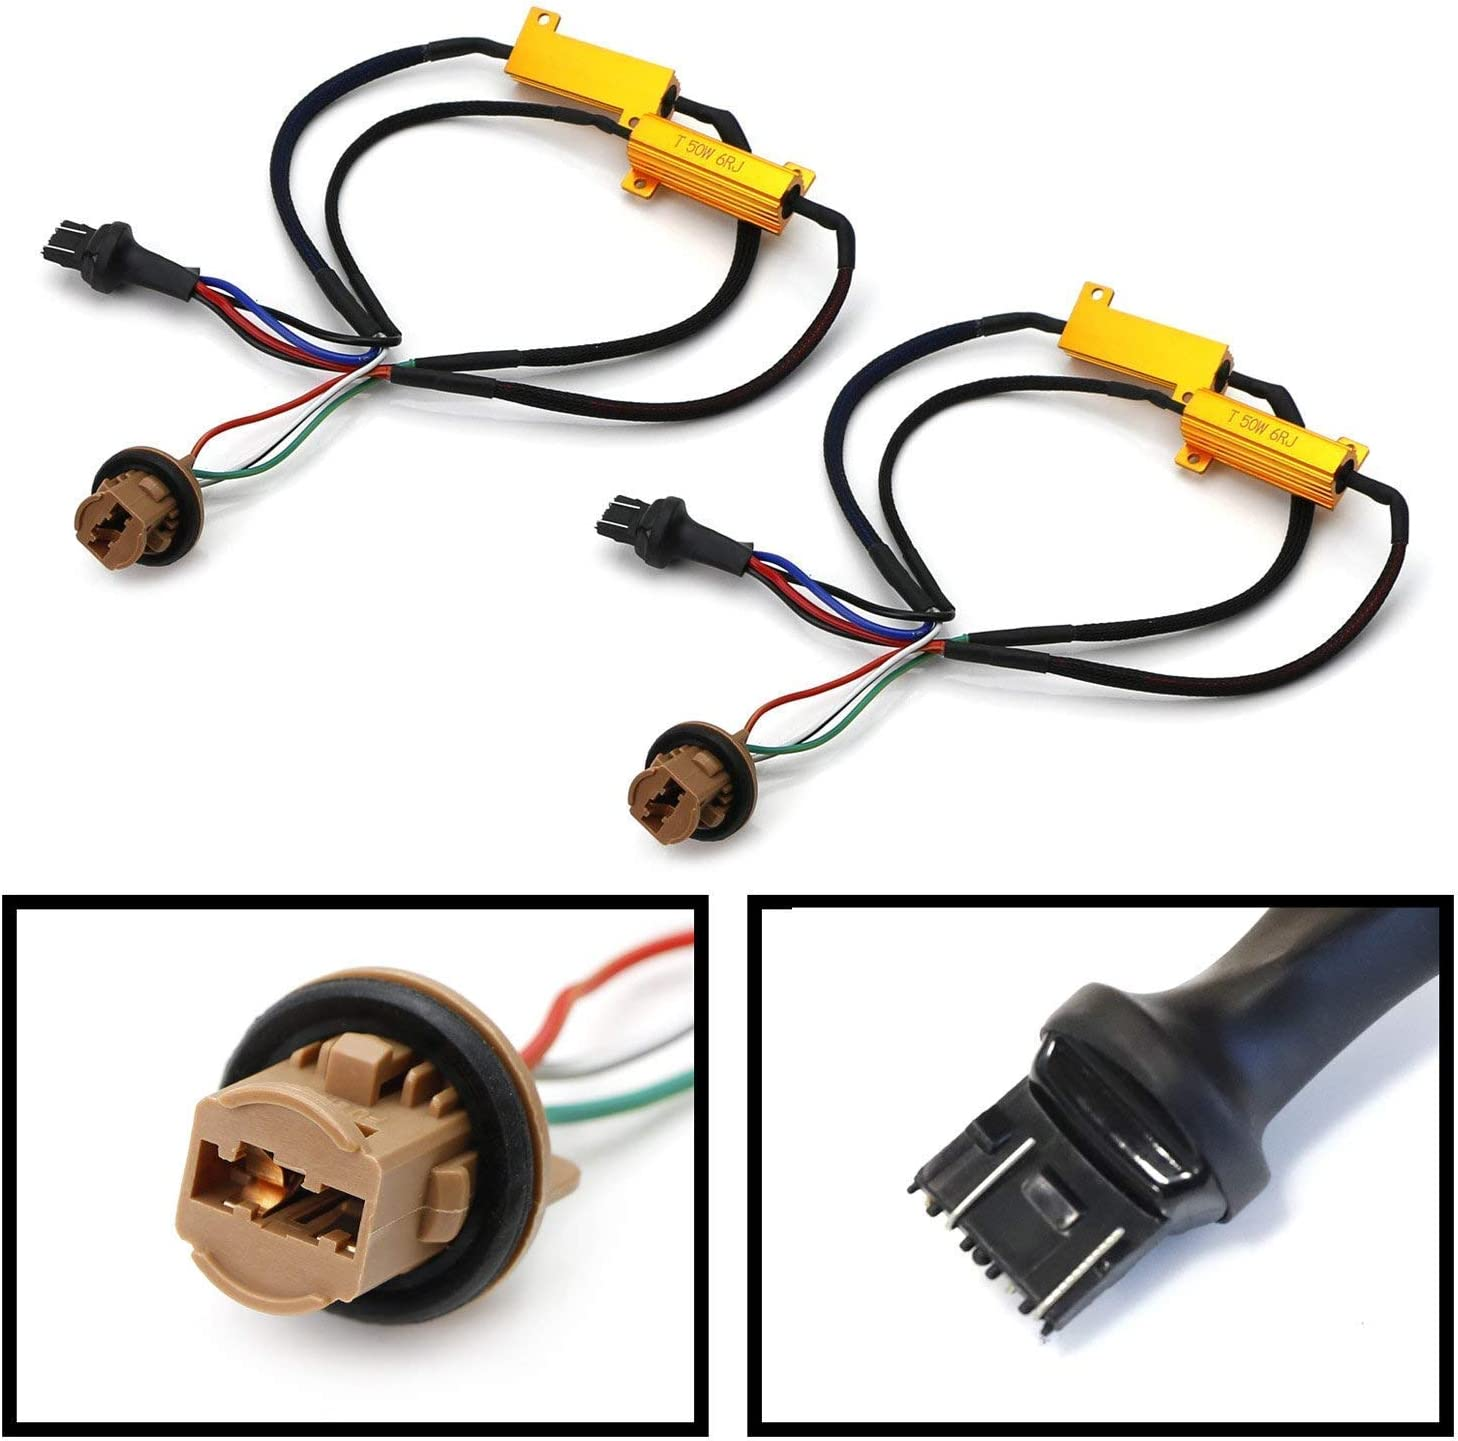 iJDMTOY 2 Hyper Flash//Bulb Out Error Fix Wiring Adapters Compatible With 7443 7444 T20 LED Bulbs Turn Signal or Tail Brake Lights